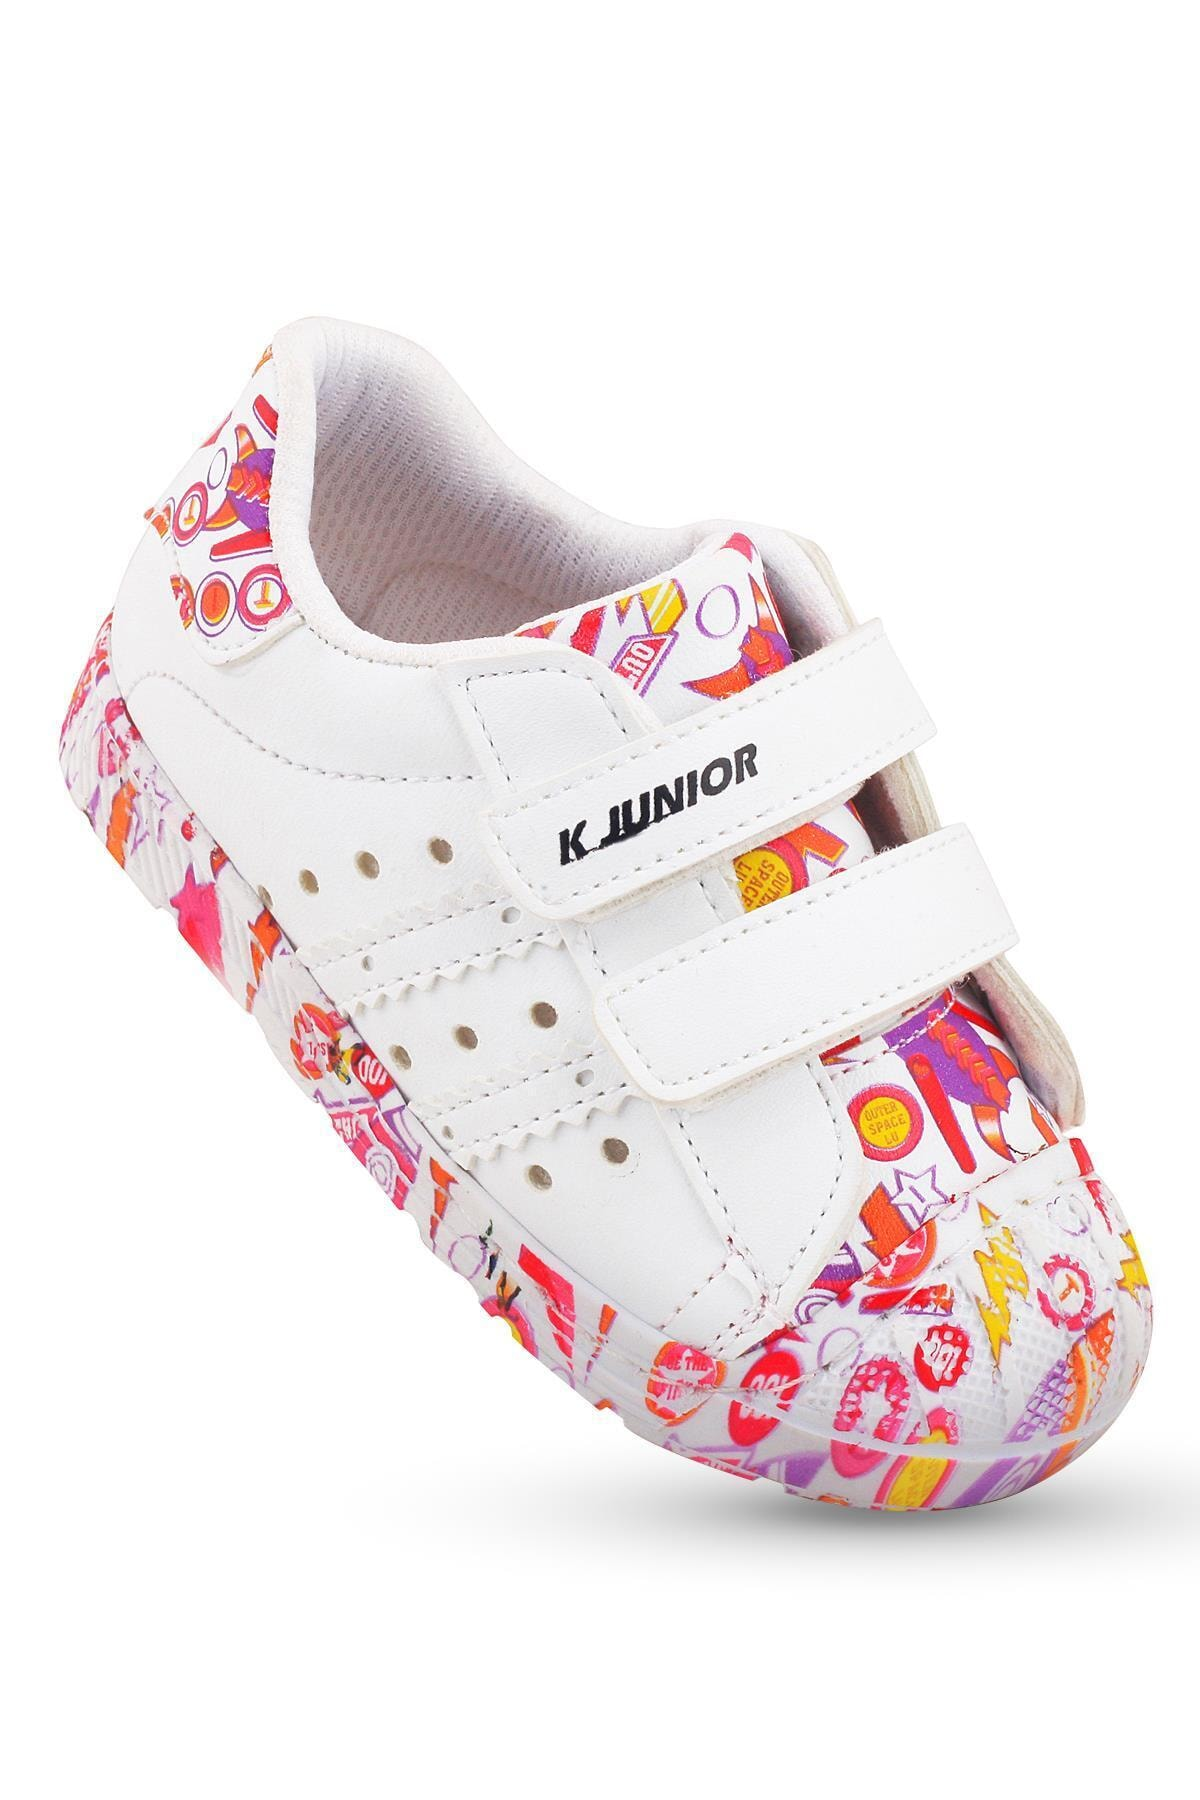 Flaneur Baby Girl White Orthopedic Genuine Leather Sports Shoes 2021 Premium Quality